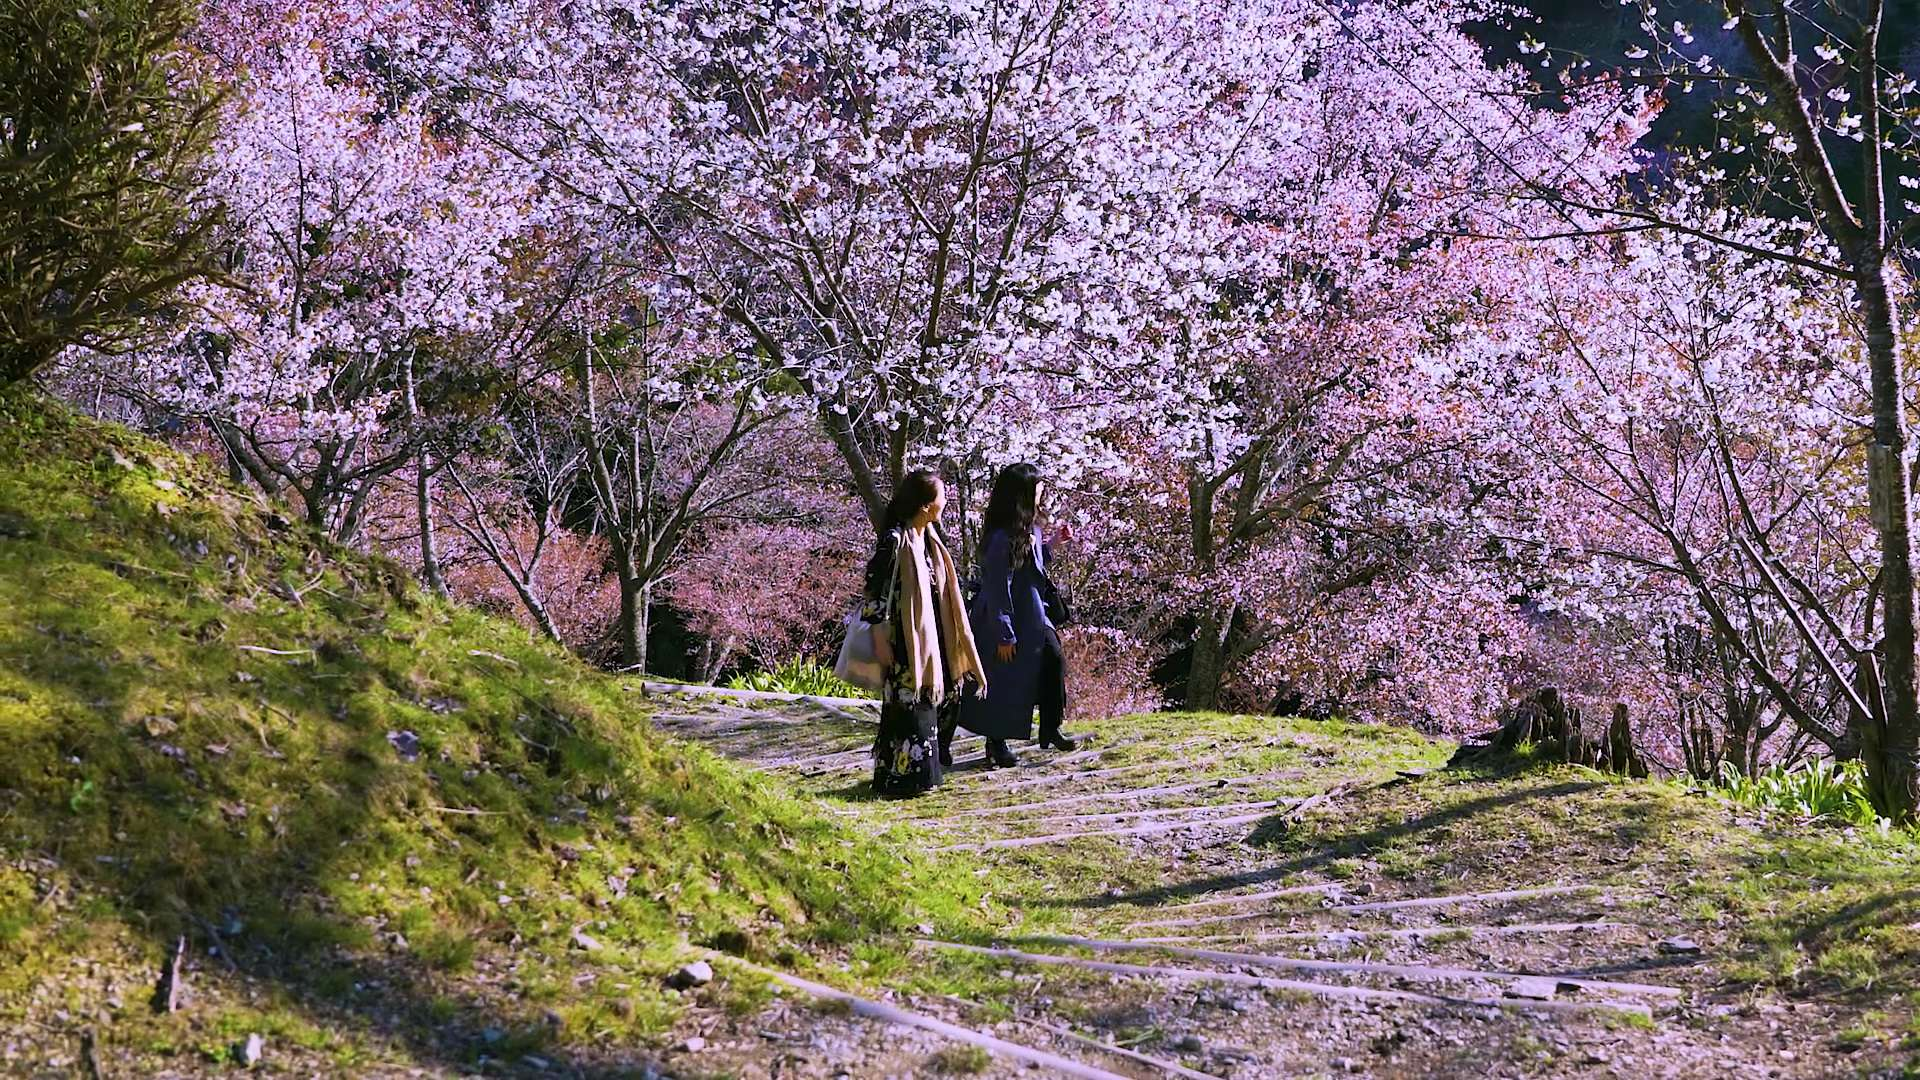 Gaze at cherry trees in full bloom while hiking!